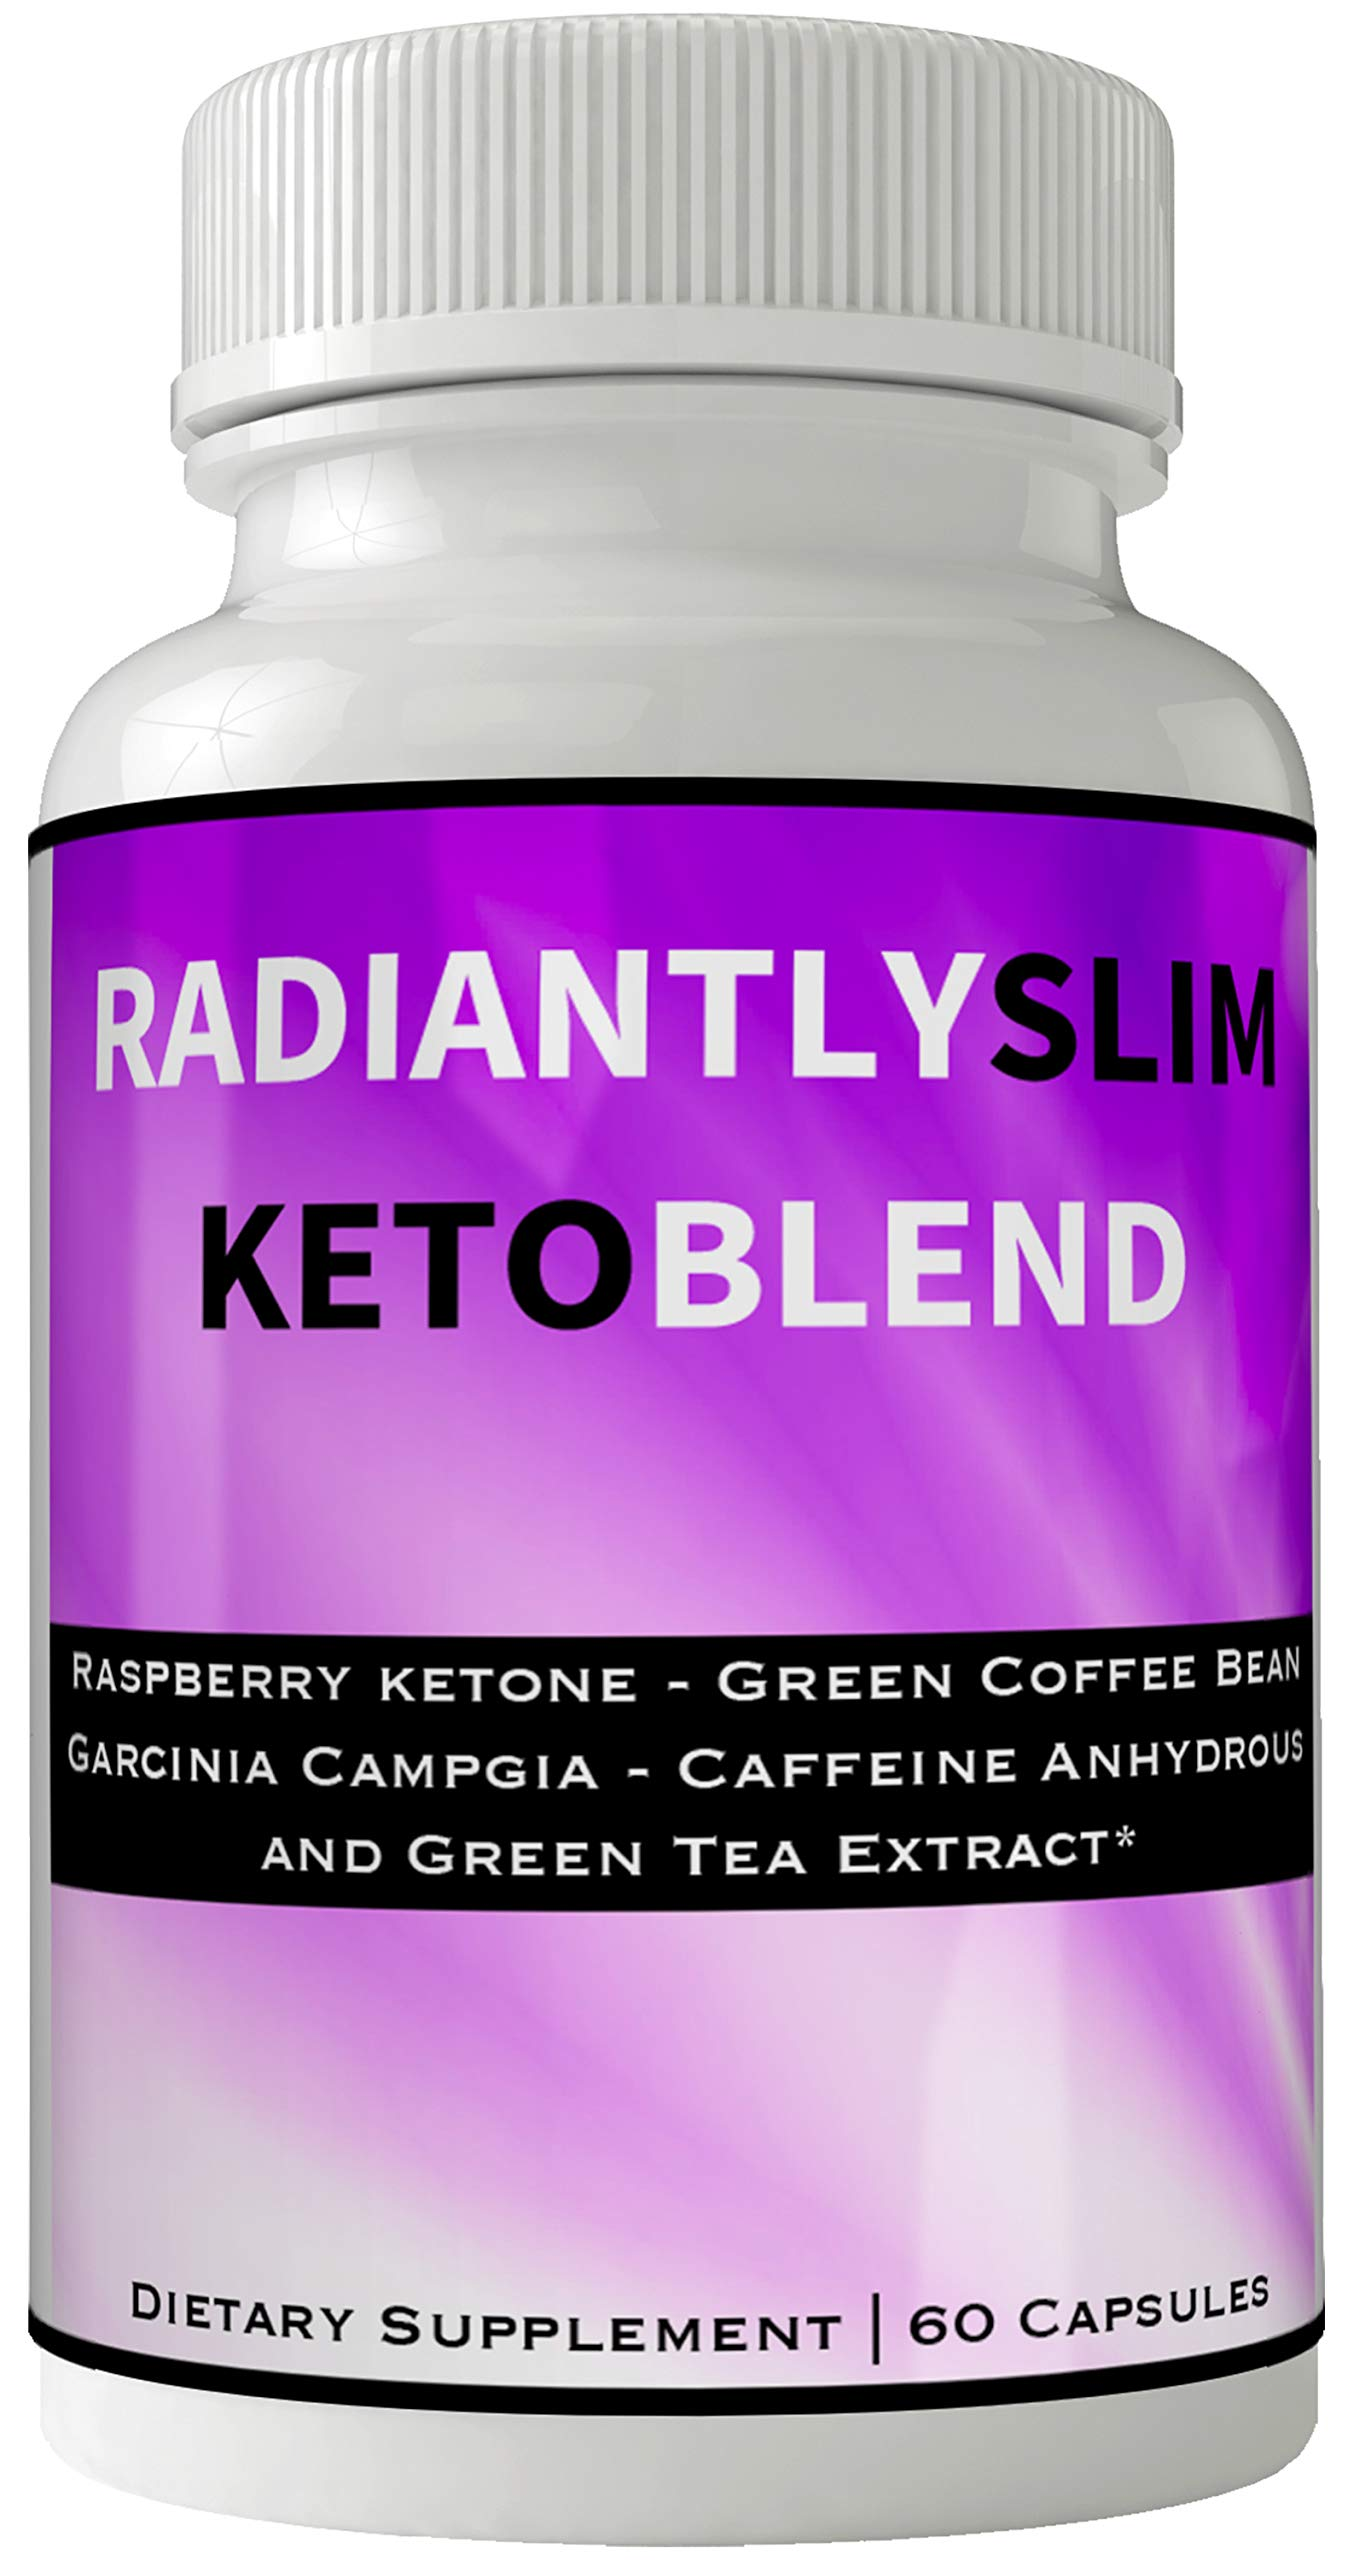 Radiantly Slim Keto Blend Pills Weight Loss Supplement, Radiantly Slim para Bajar De Peso, Advanced Weightloss Fight Hunger Pangs with Keto Diet Pills